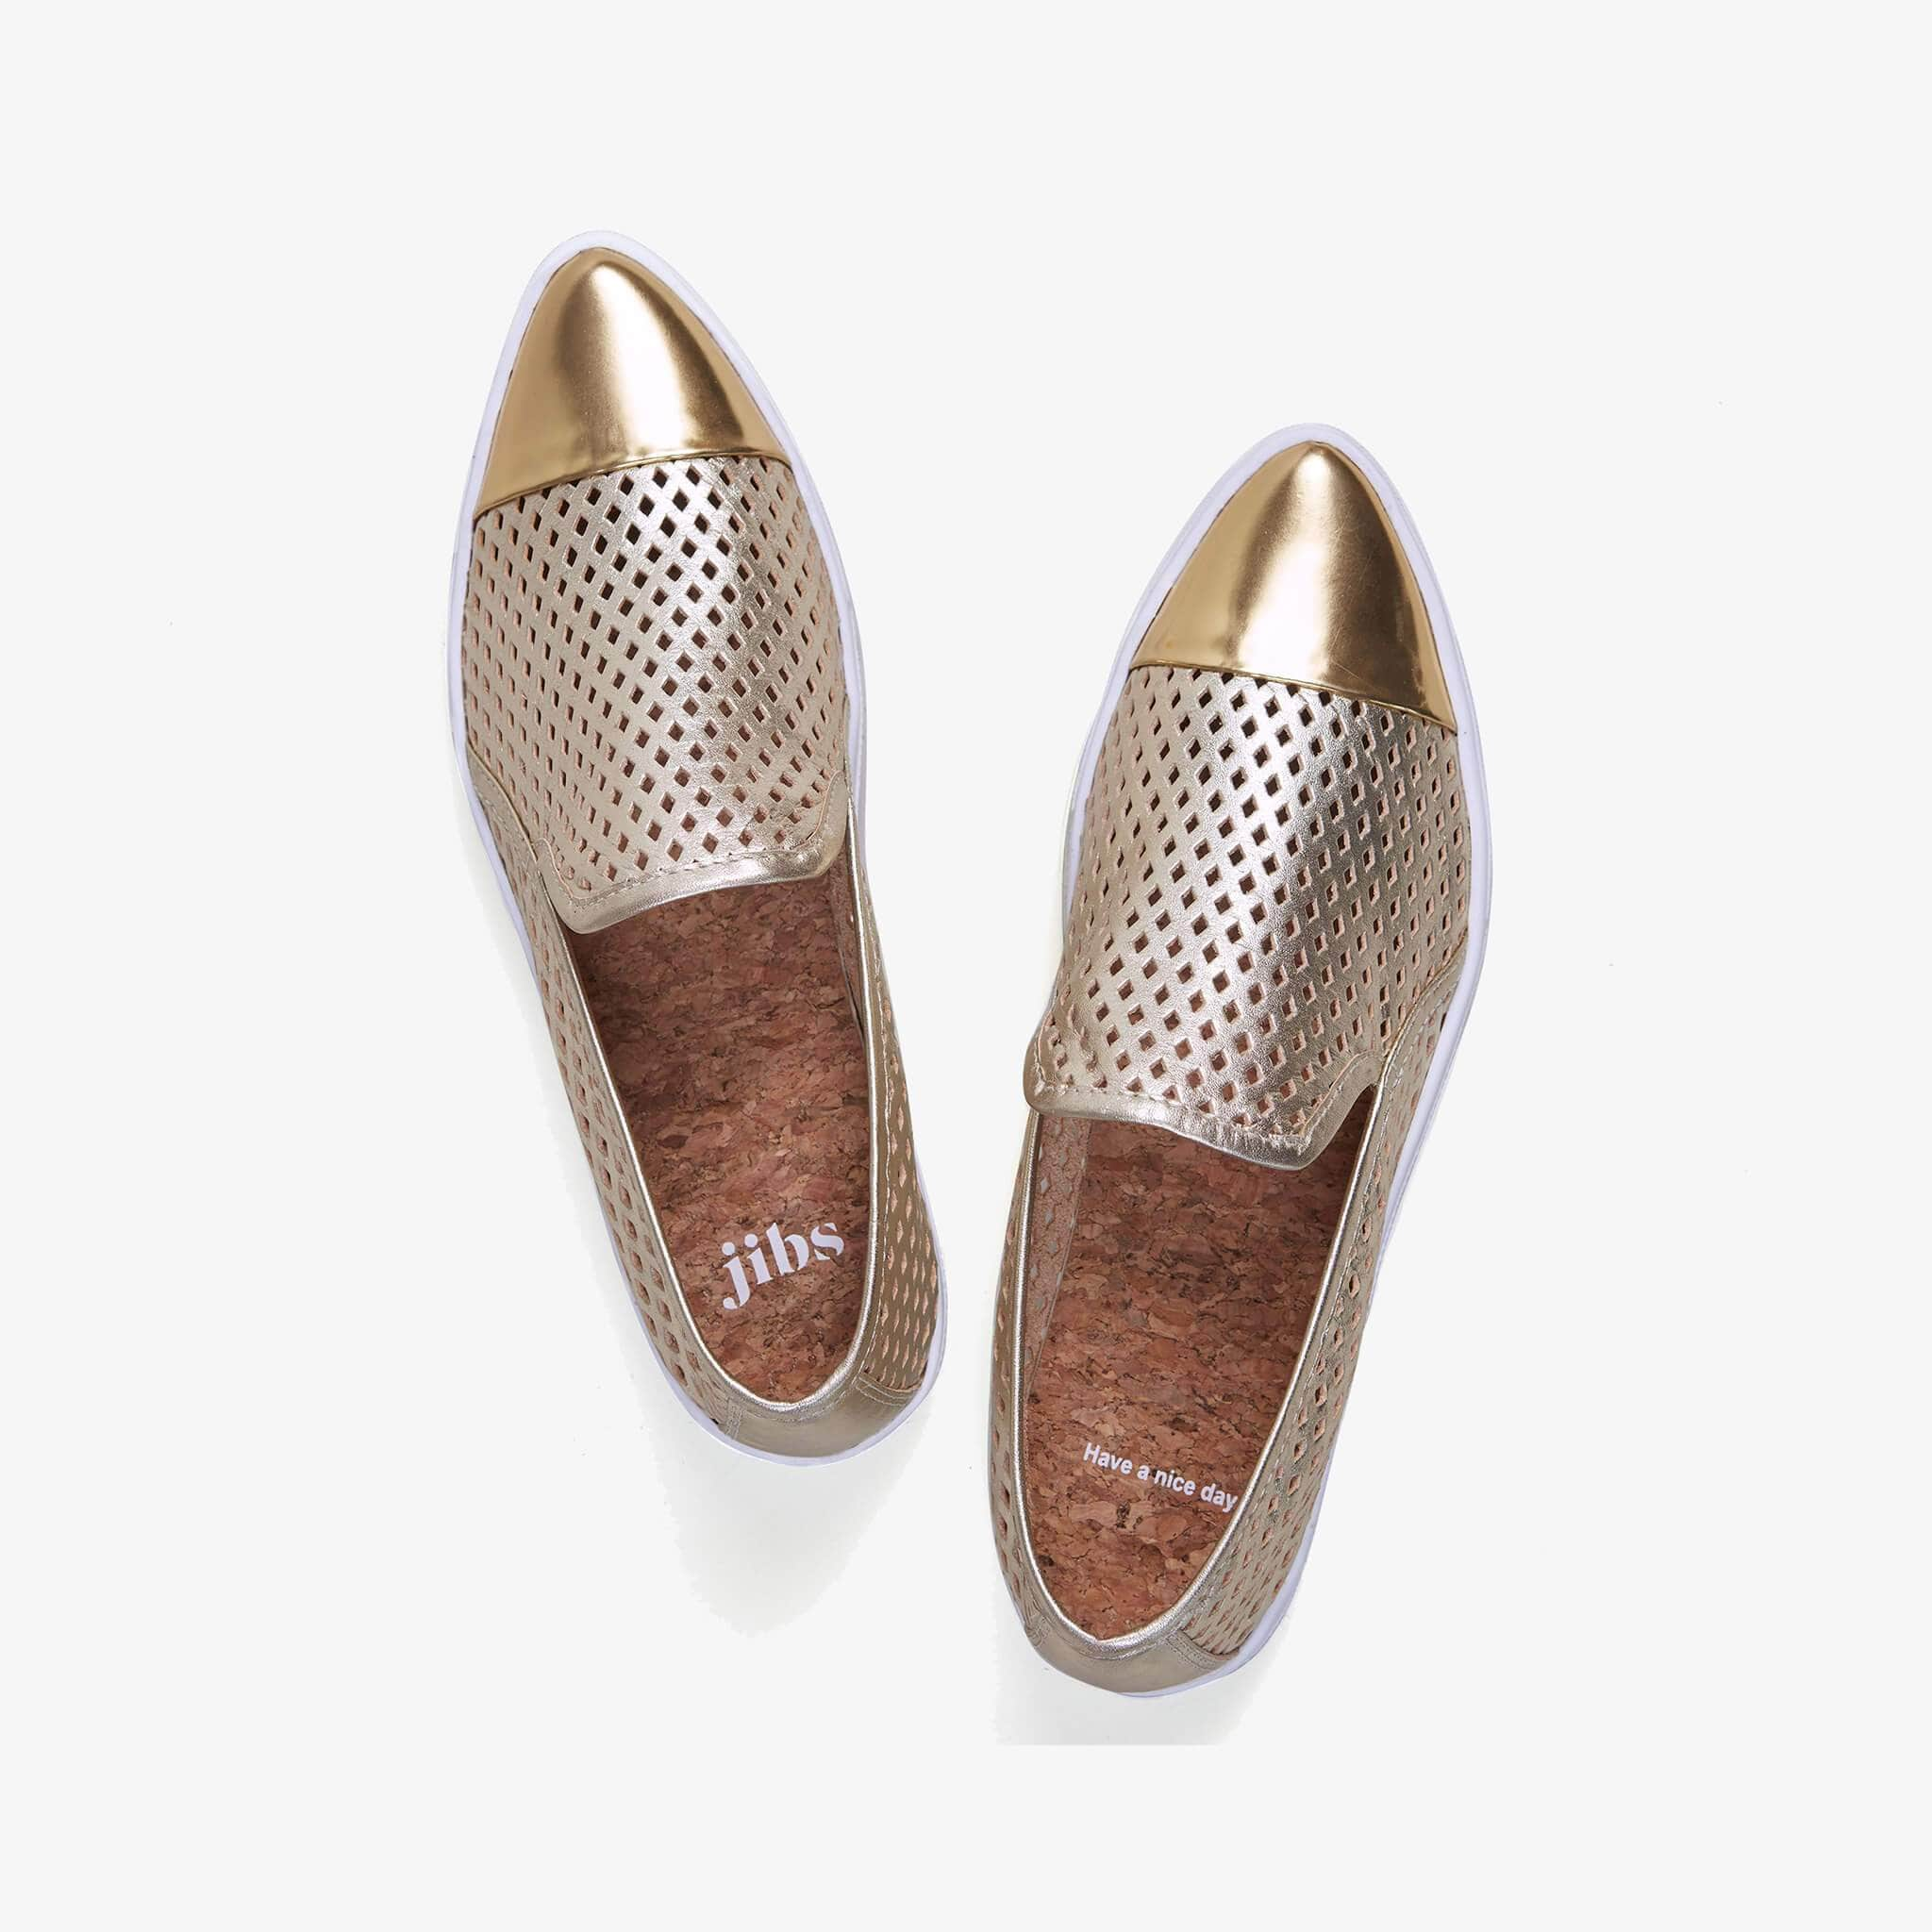 Jibs Slim Gold + Gold Slip On Sneaker Flat Top Have A Nice Day